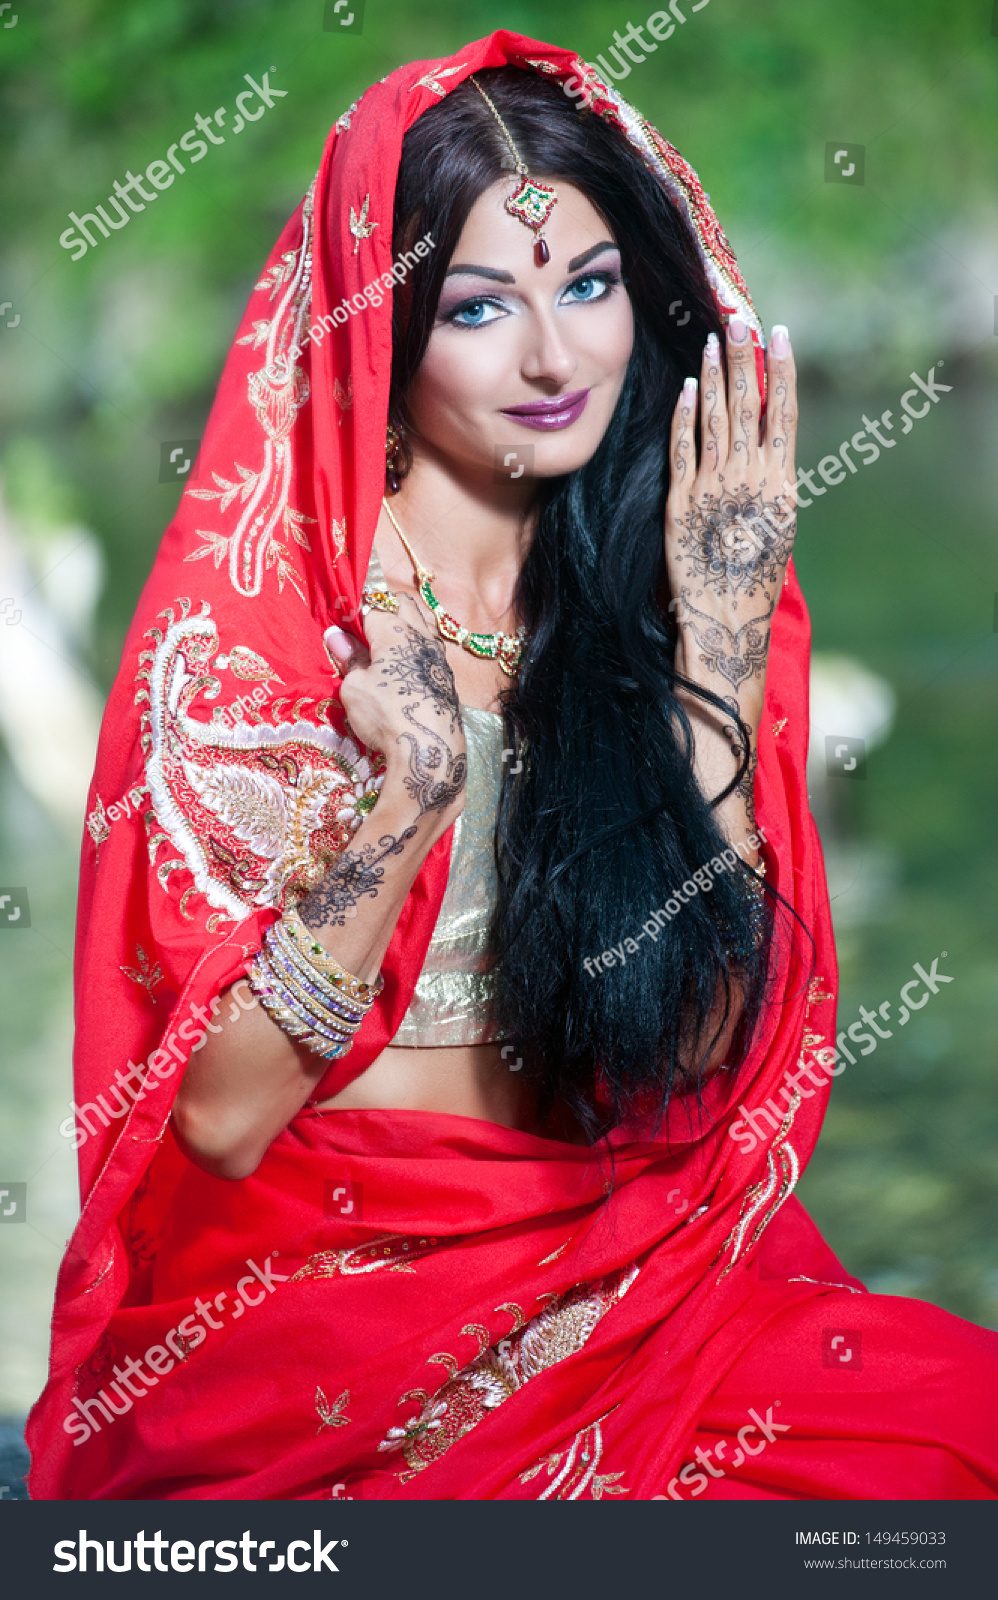 Beautiful Young Indian Woman Traditional Clothing Stock -5692